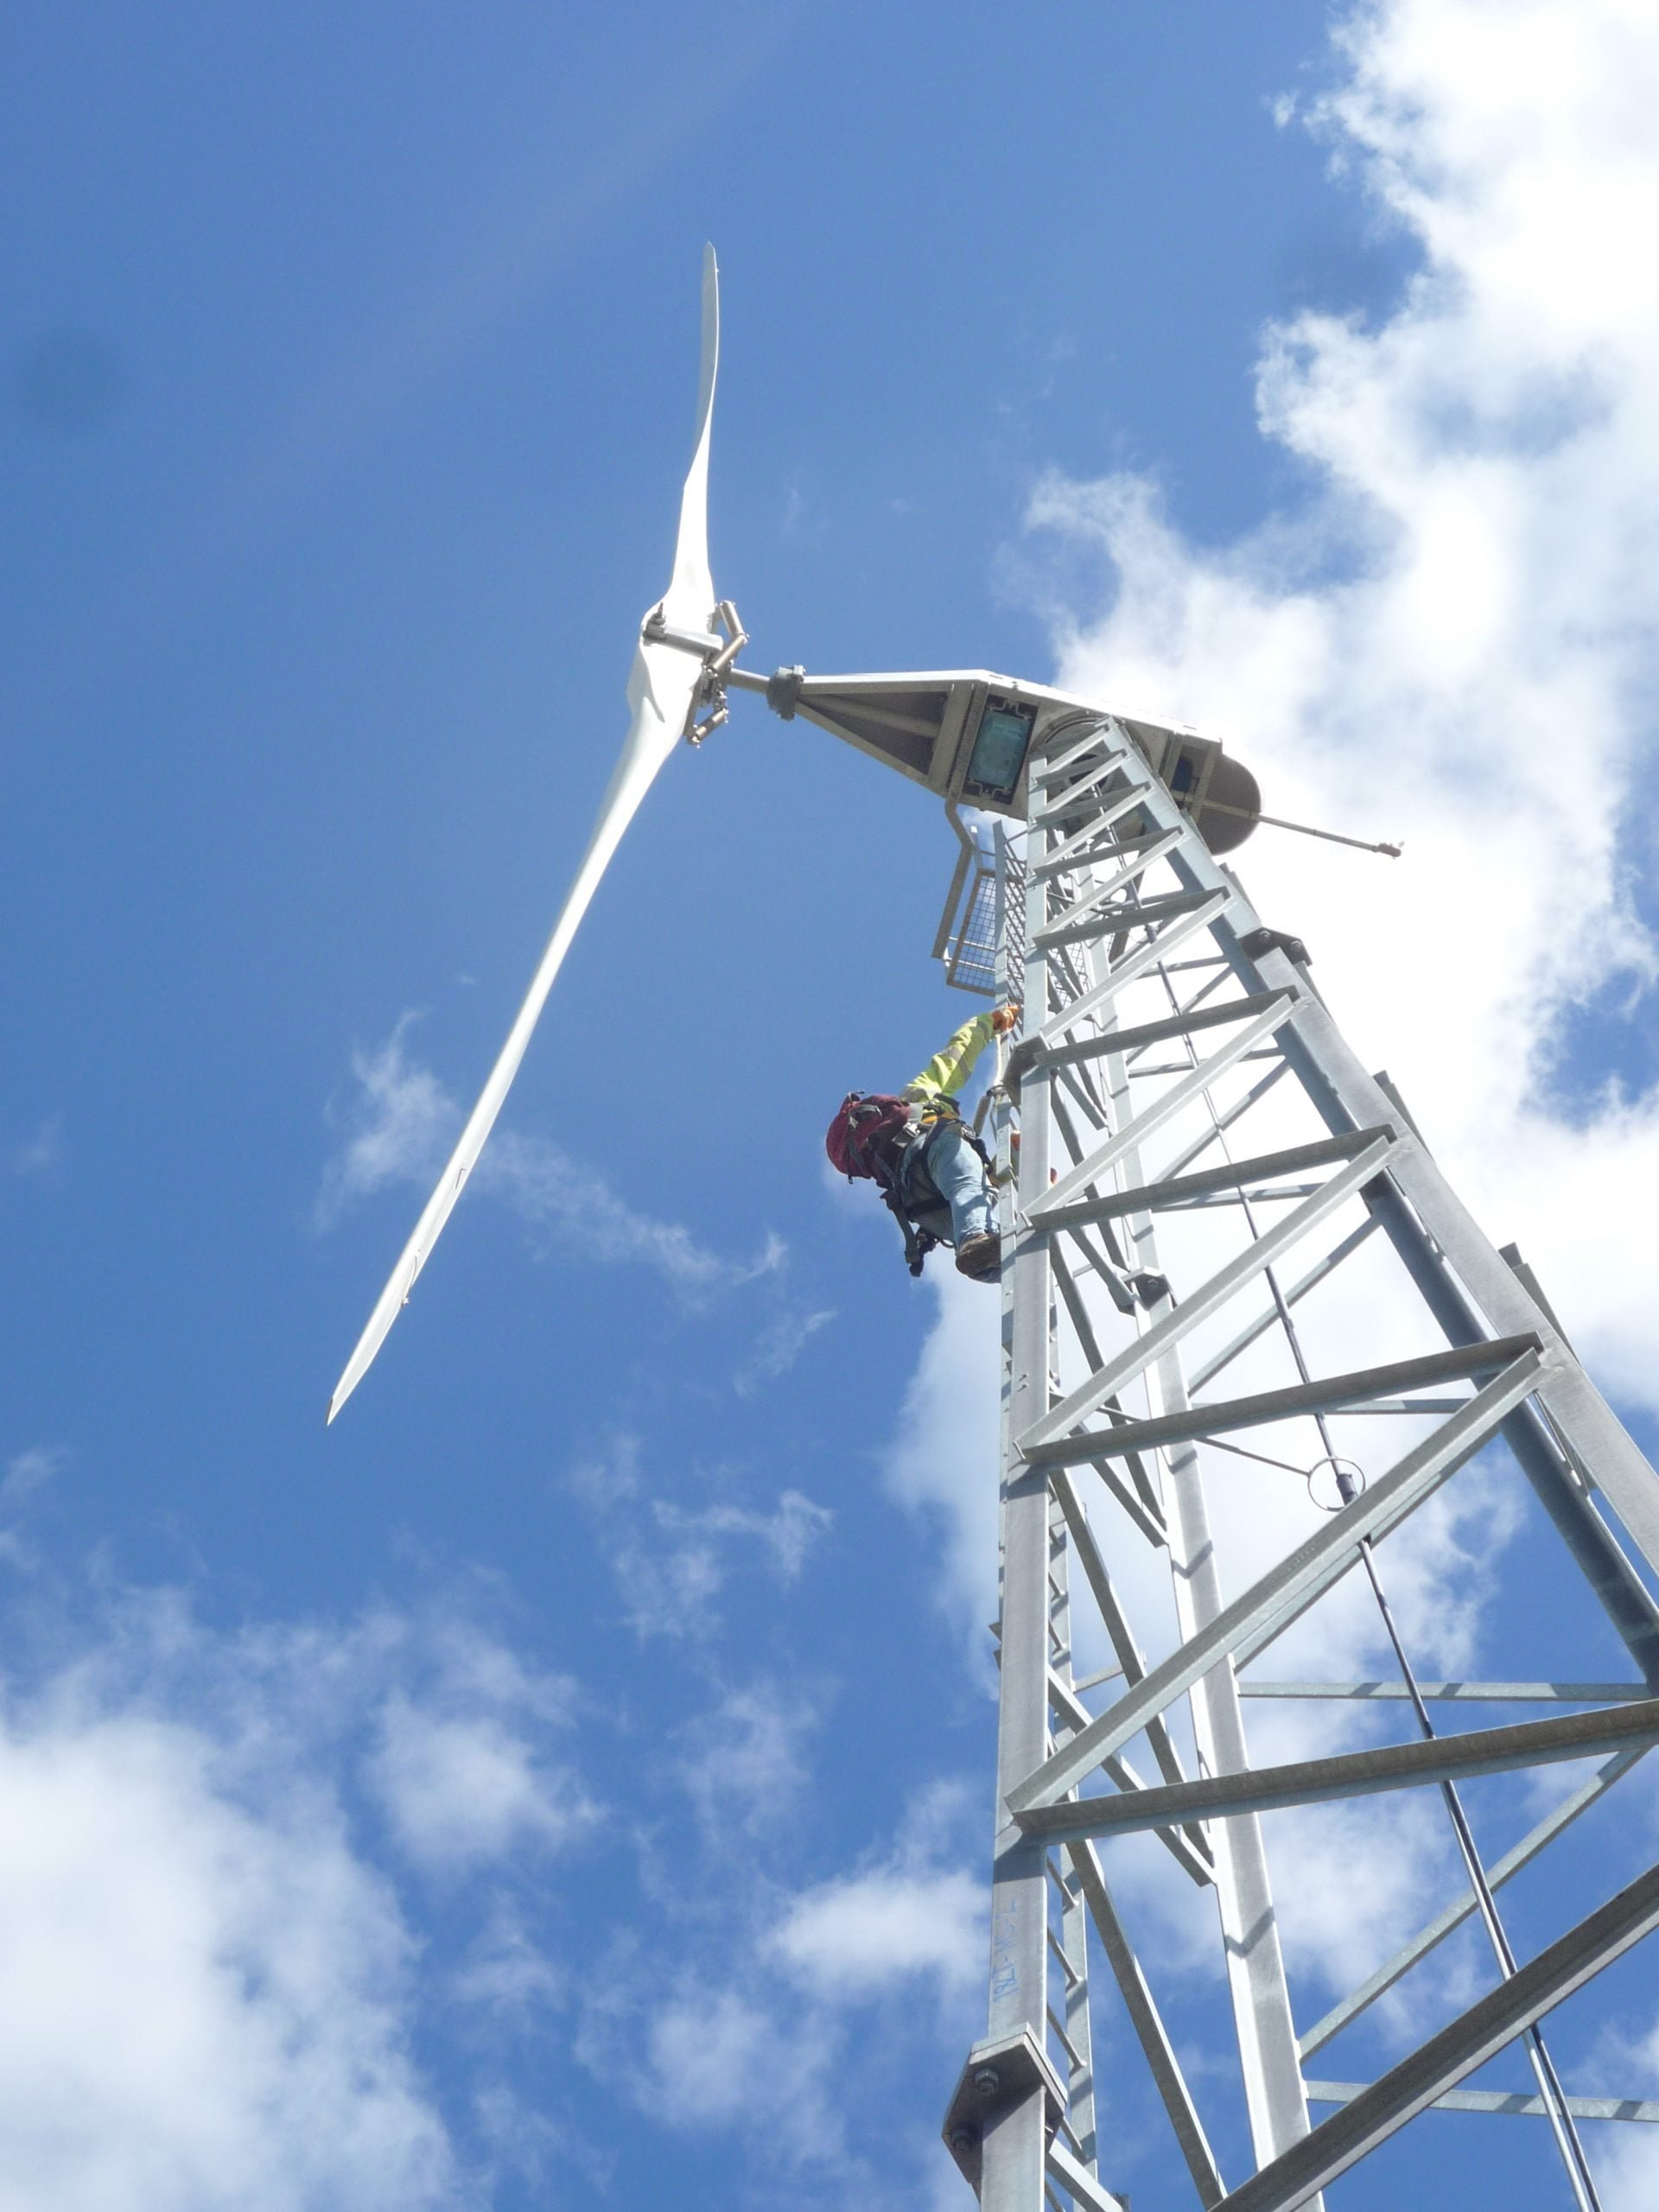 Wind turbine servicing client UK